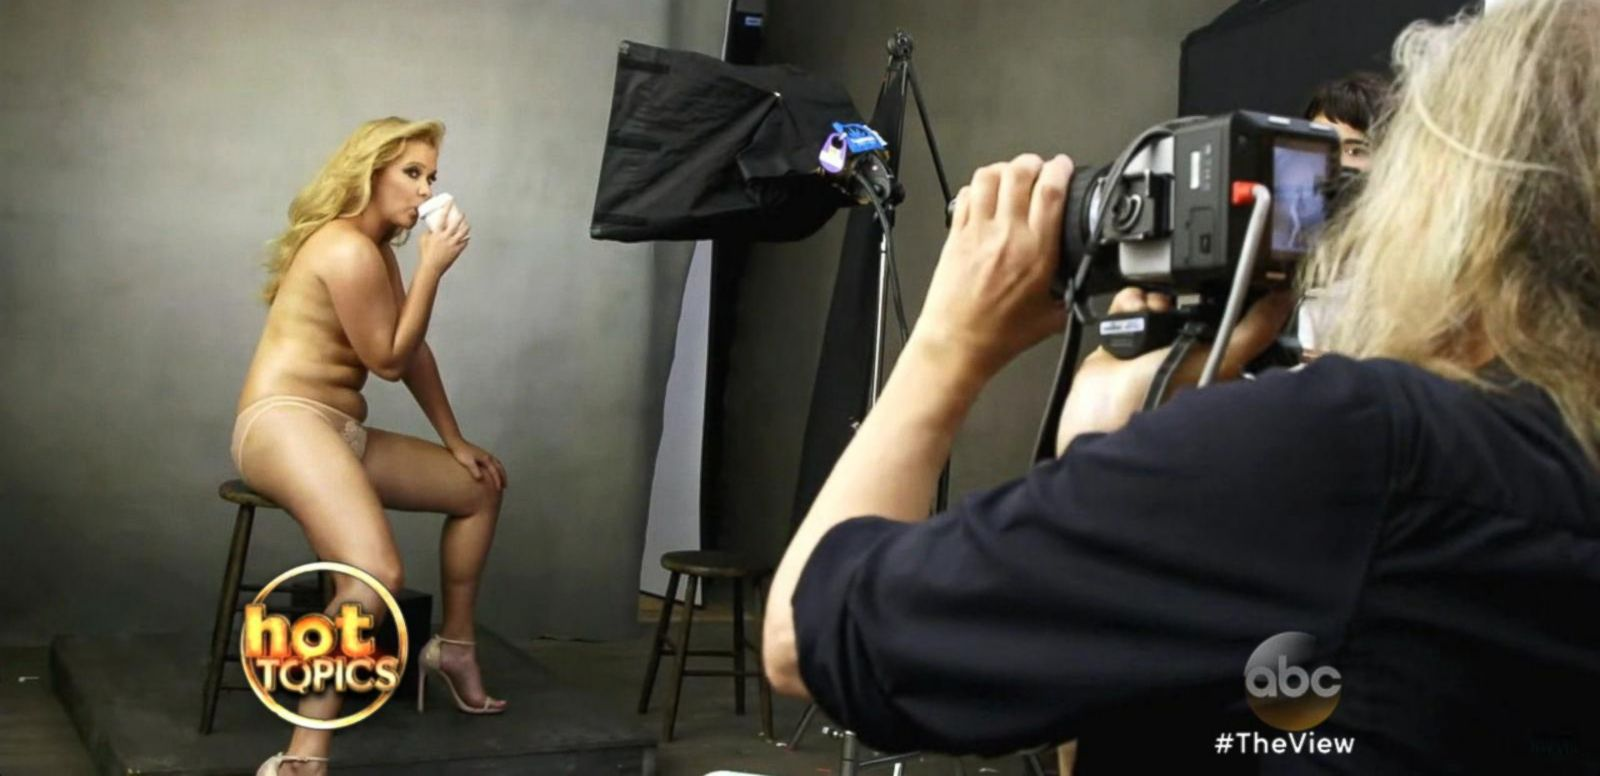 VIDEO: Amy Schumer Poses Semi-Nude